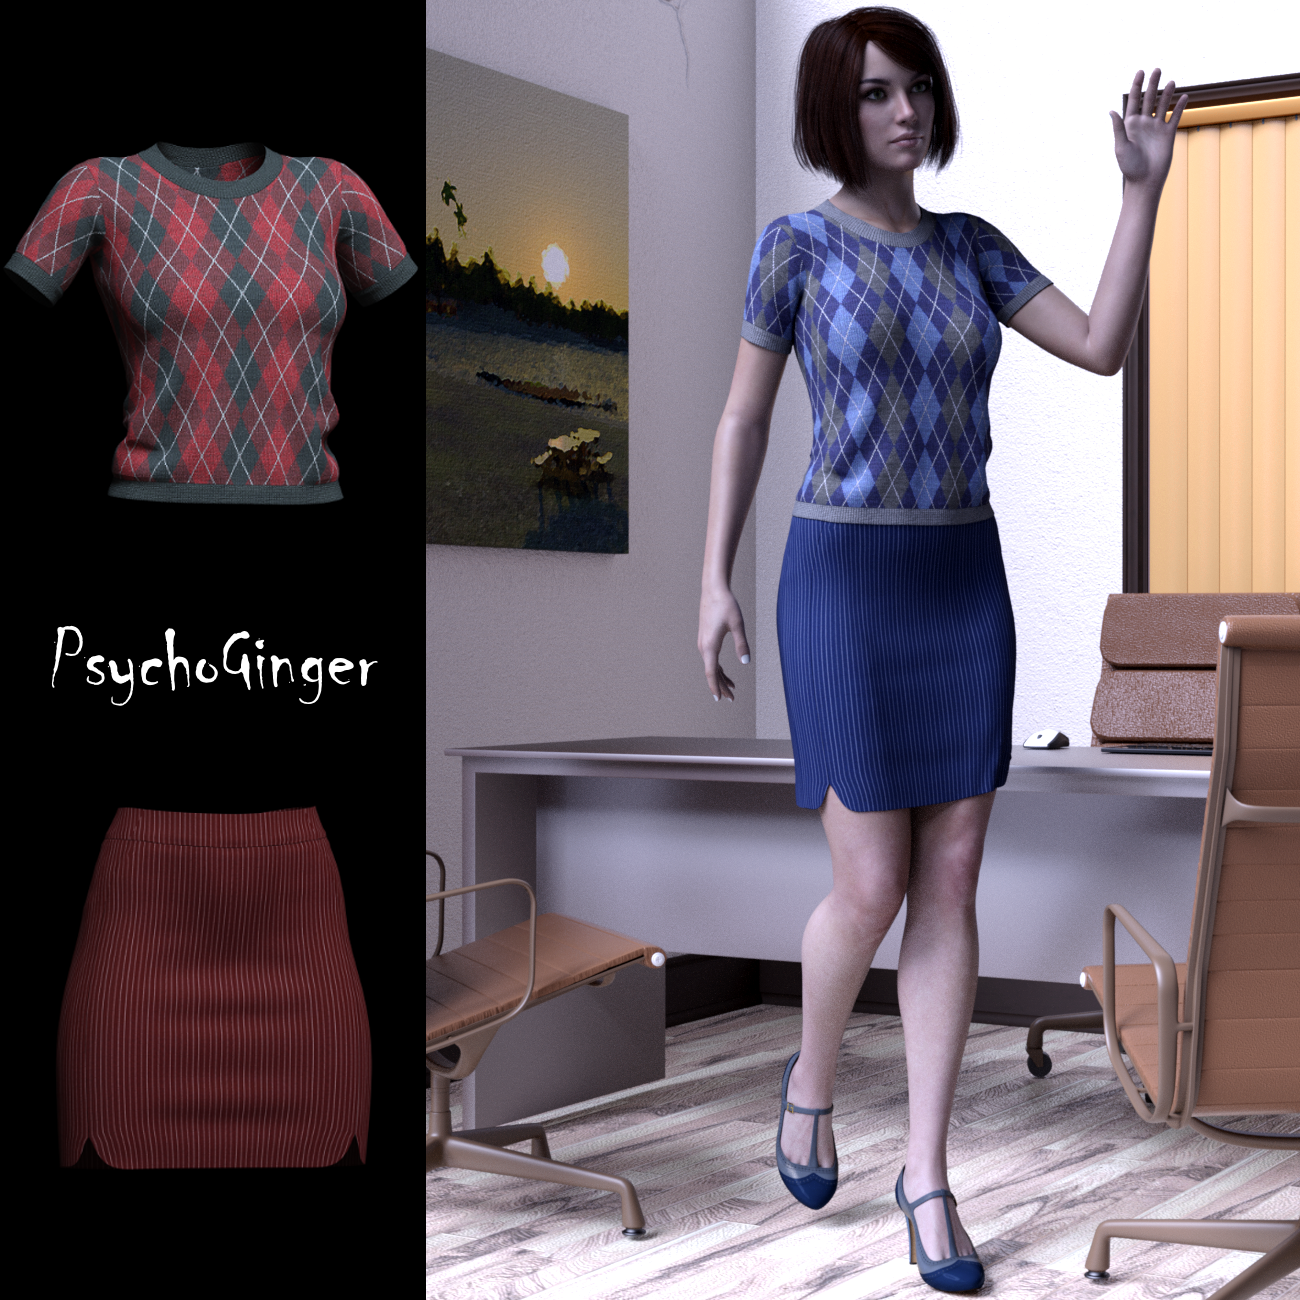 dForce 9 to 5 outfit for G8F by PsychoGinger